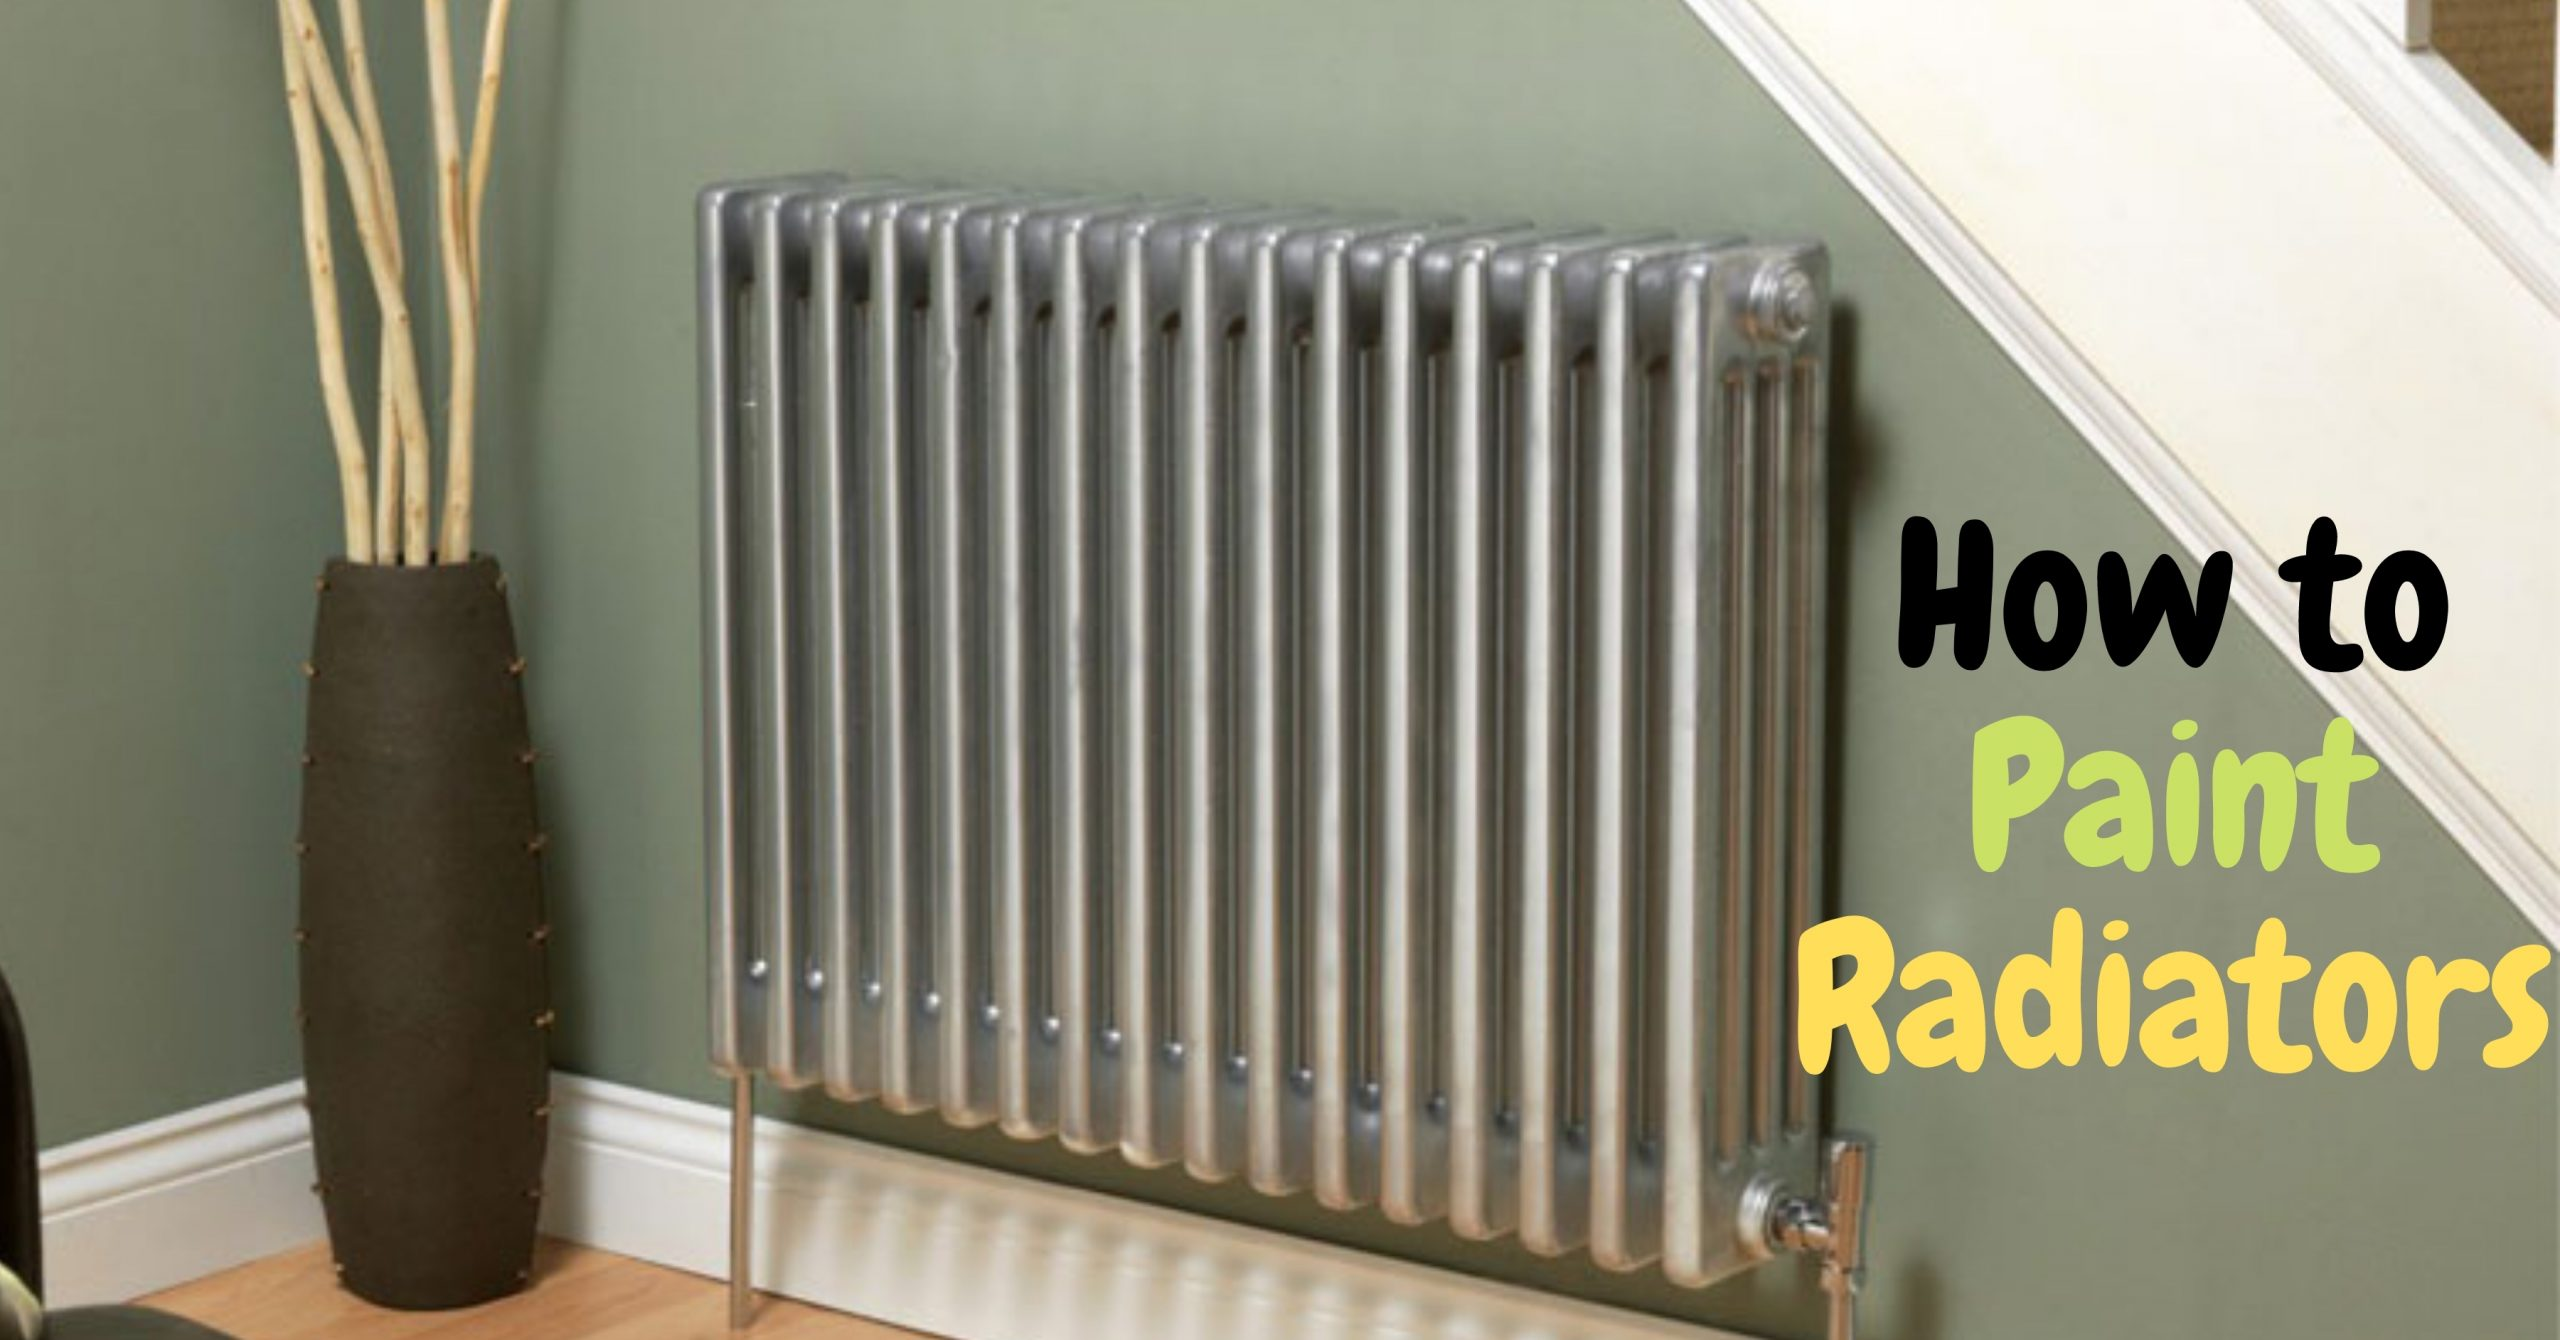 How To Paint Radiators (Everything You Need To Know)